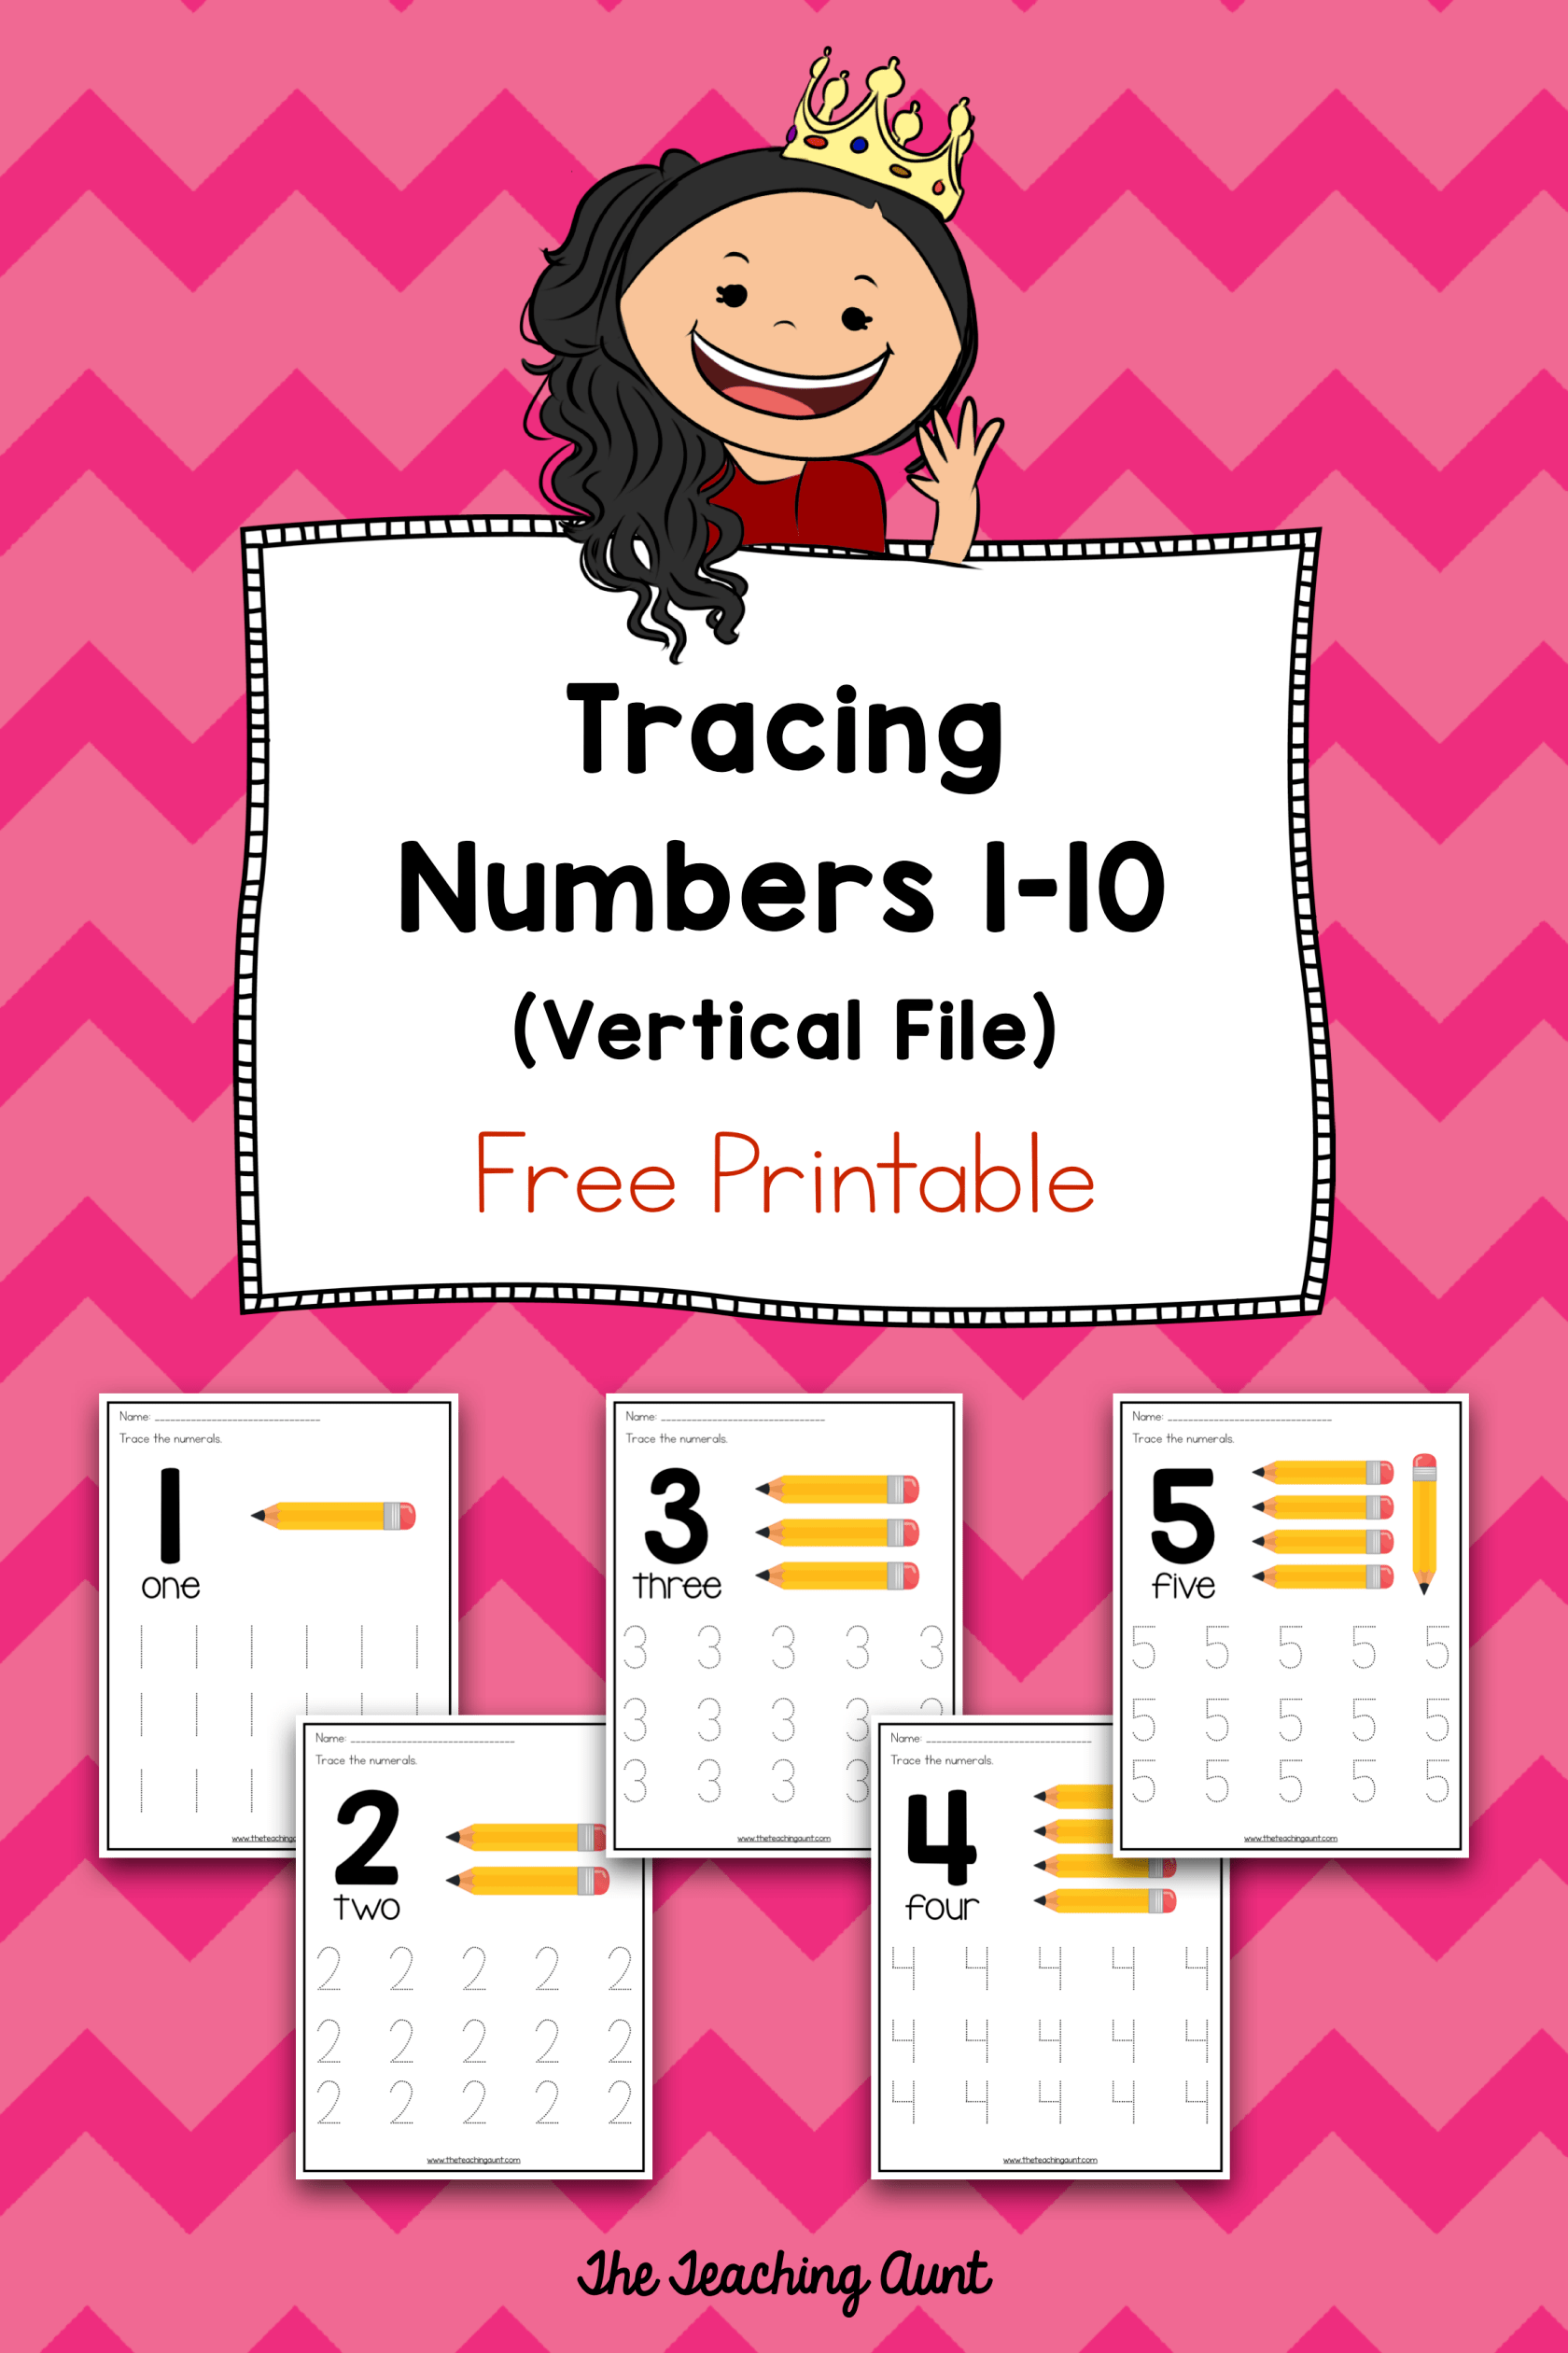 Number Tracing Worksheets For Preschoolers